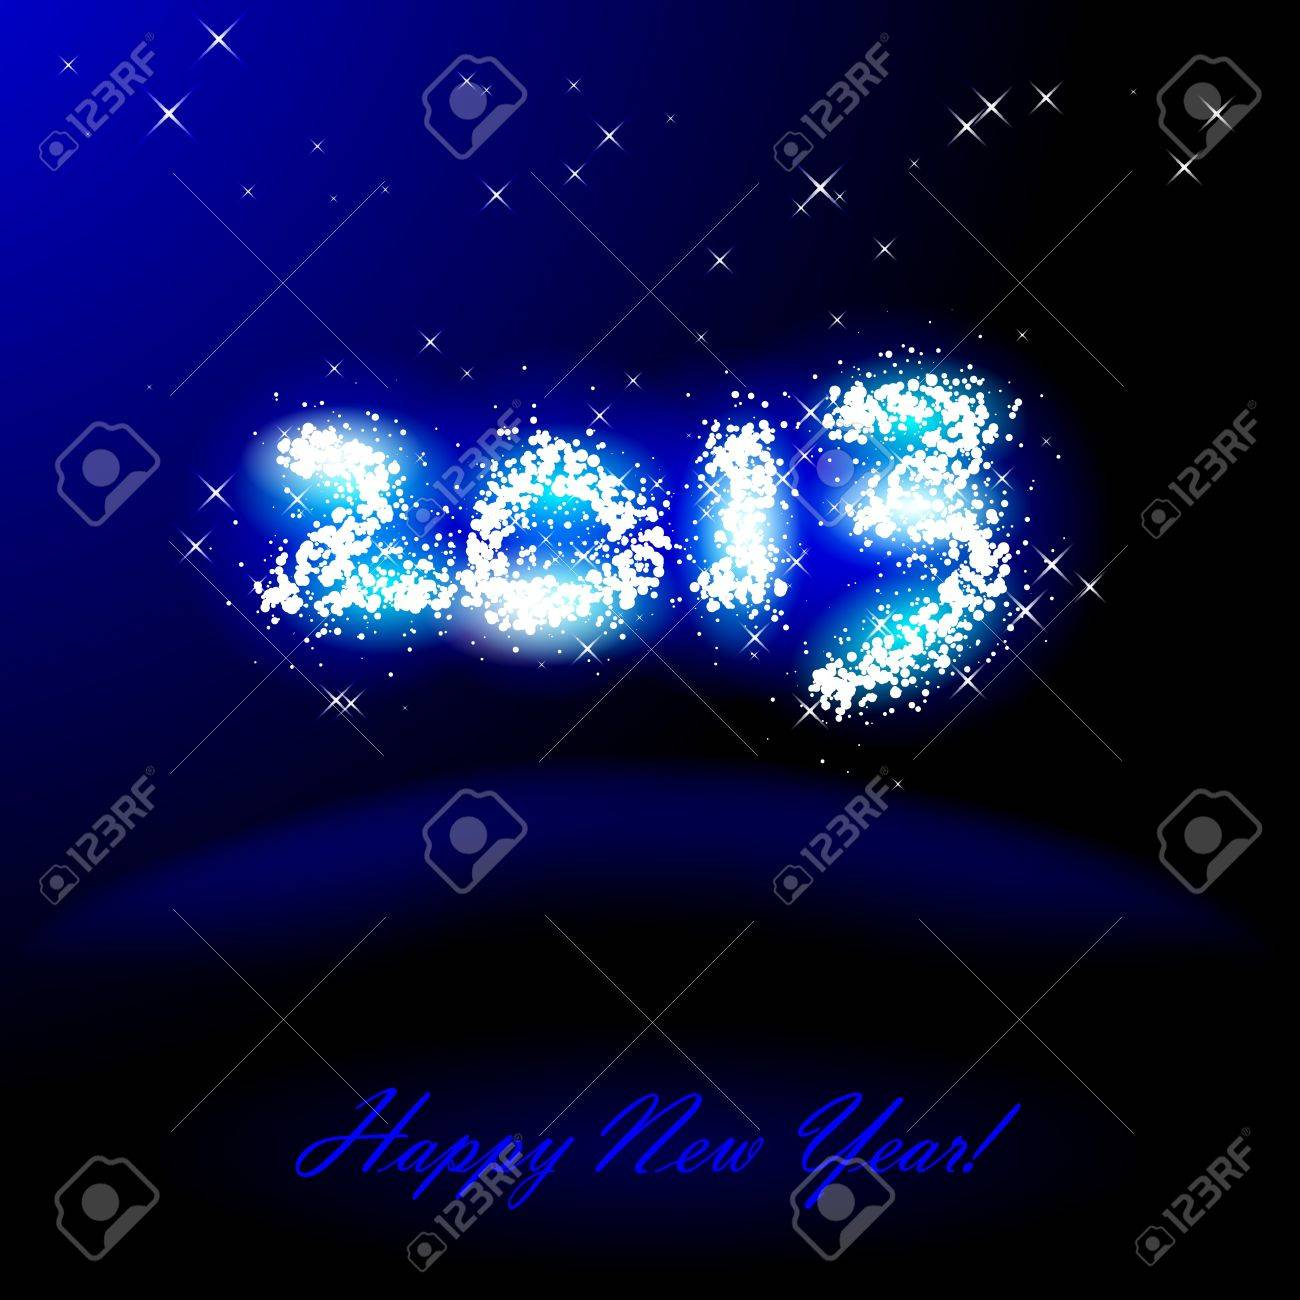 Vector illustration of 2013 in sparkles over blue Stock Vector - 16125205